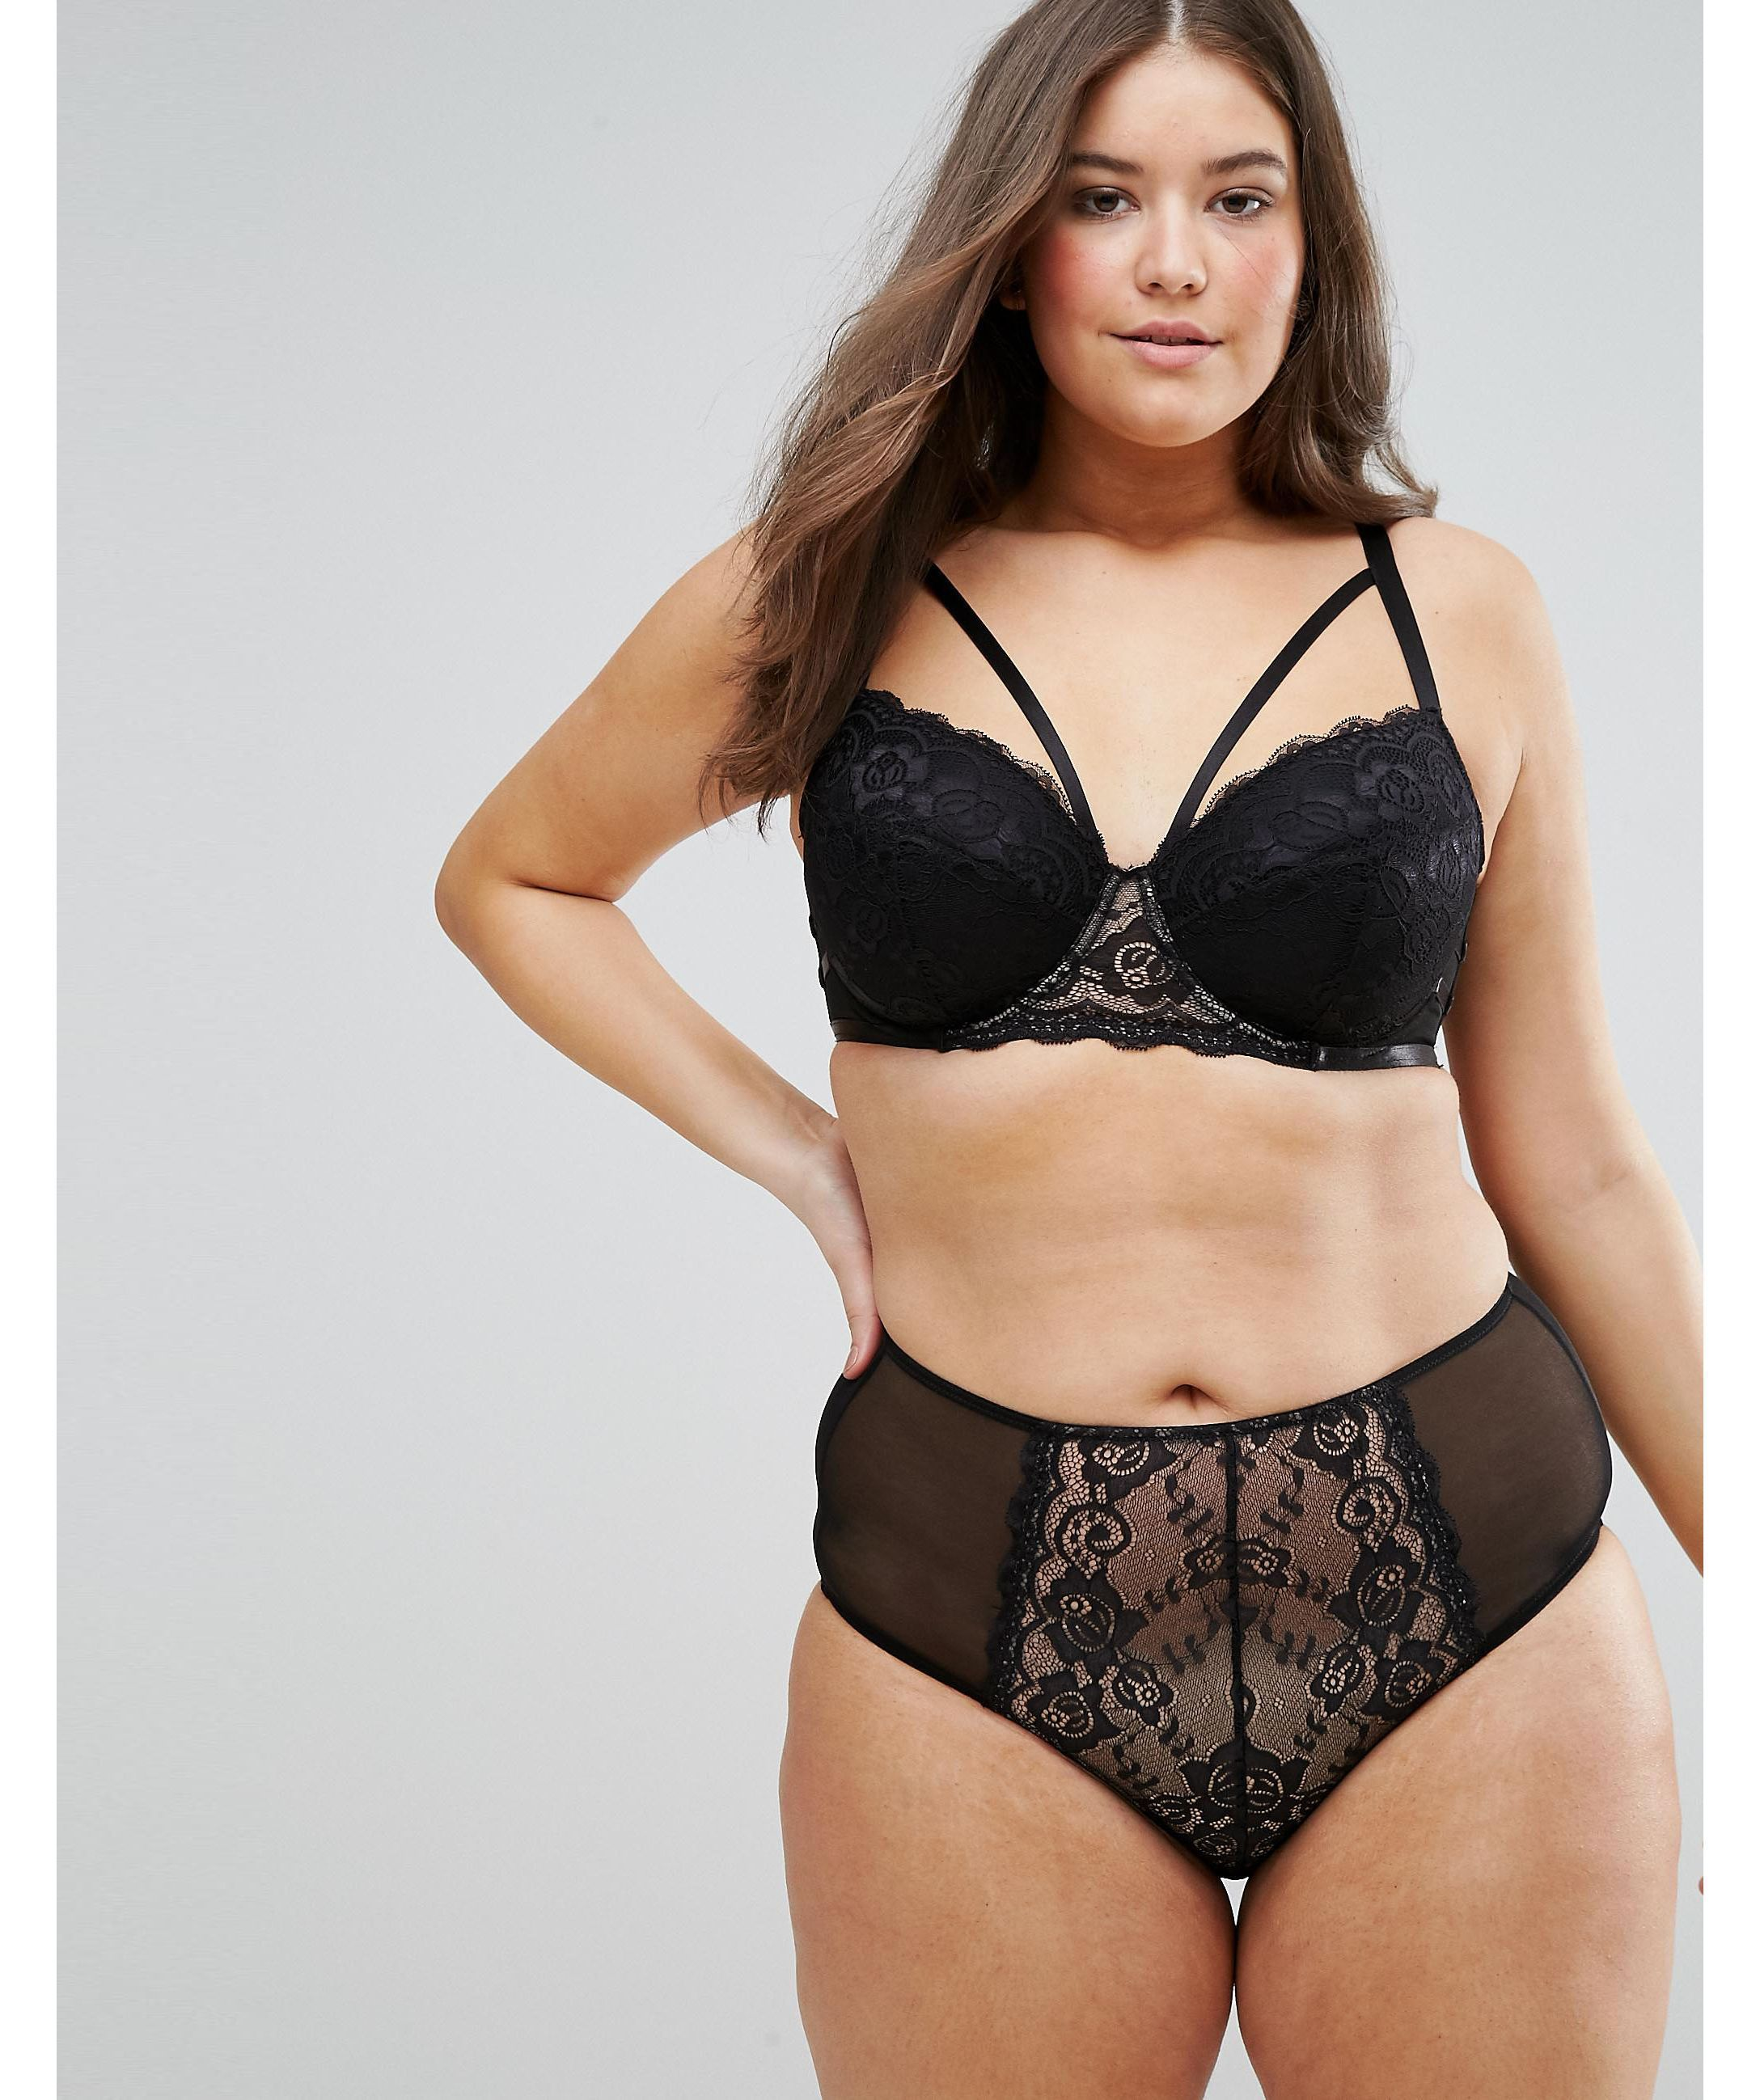 ★ASOS★ CURVE Florence ストラップpy Lace Moulded Underwire